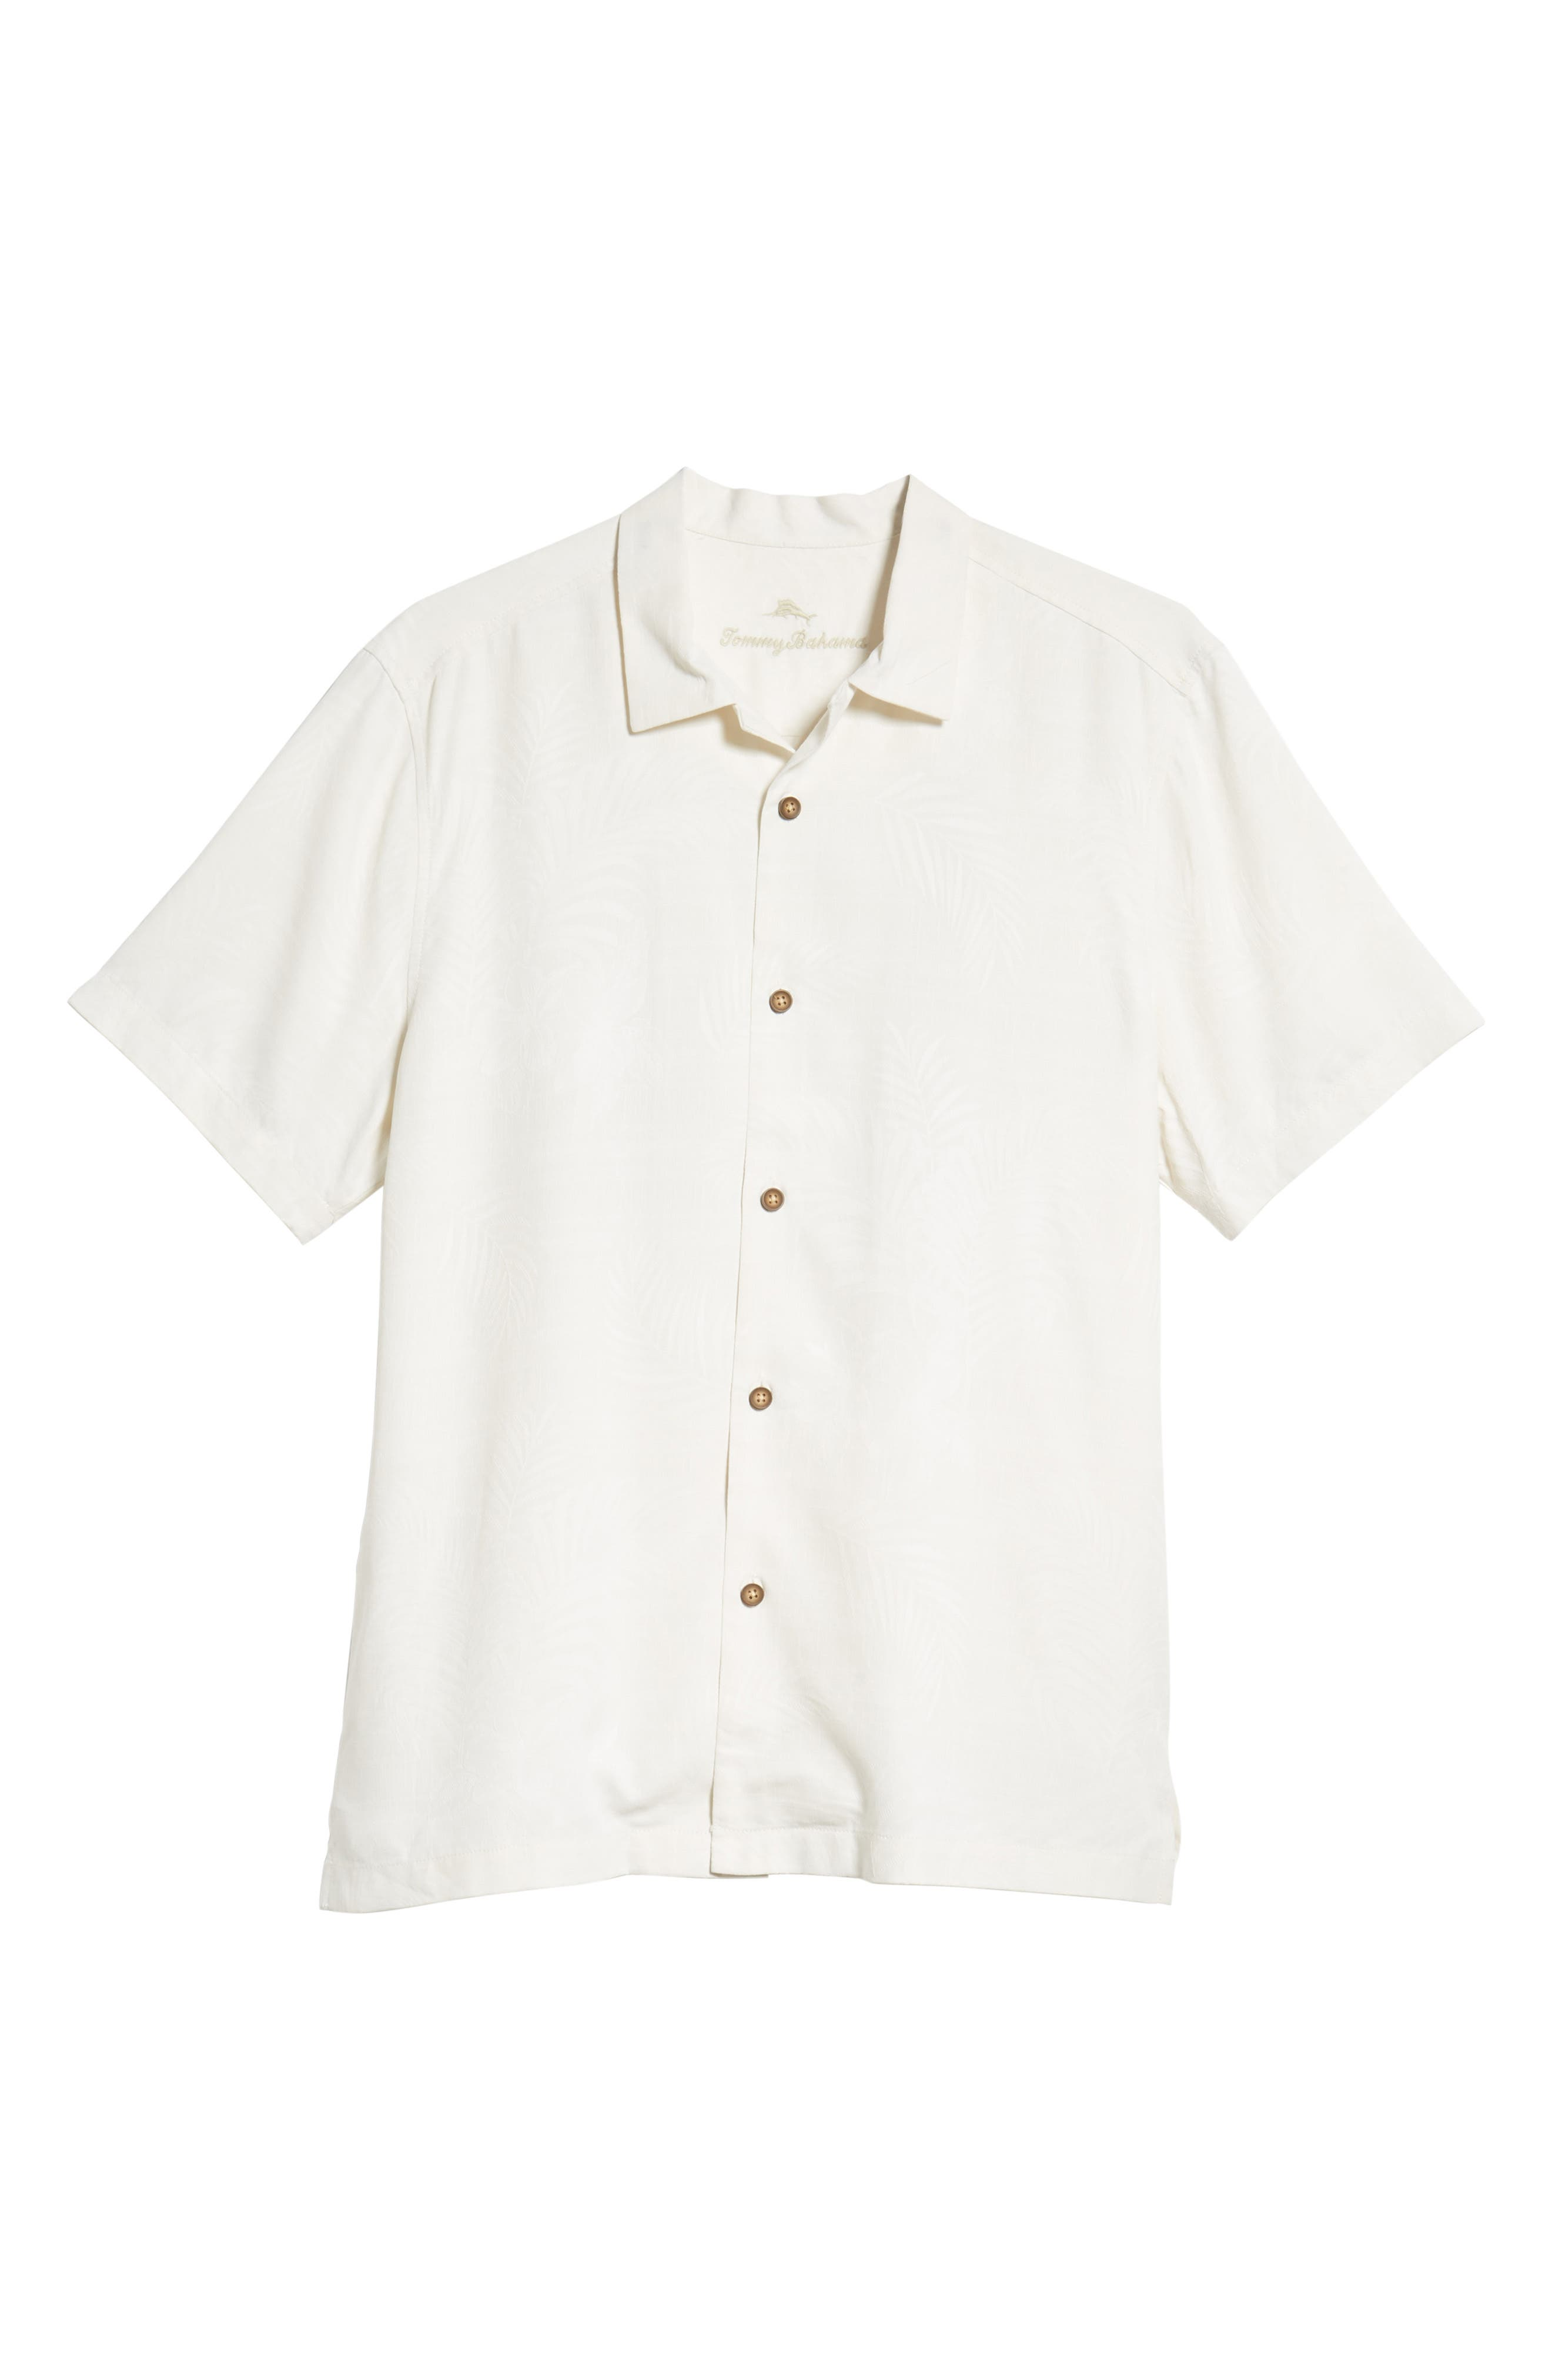 TOMMY BAHAMA,                             Tailgate Club Embroidered Silk Camp Shirt,                             Alternate thumbnail 6, color,                             100